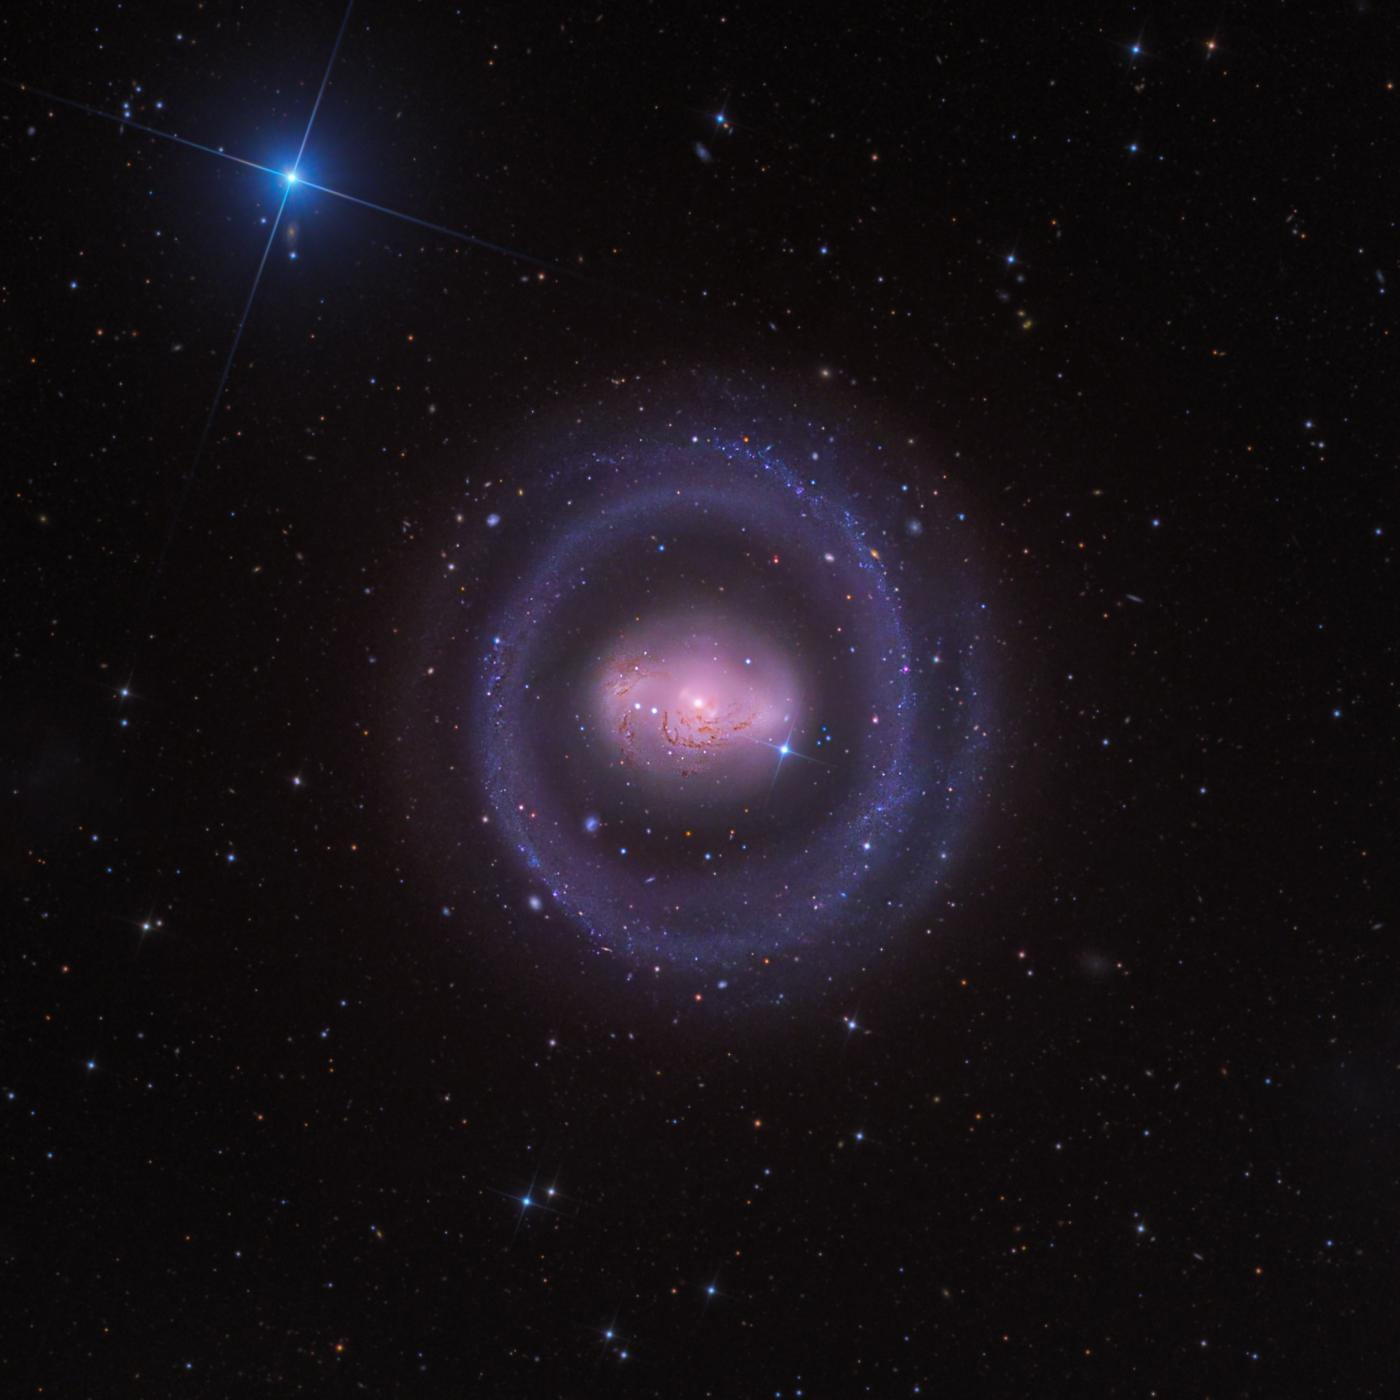 An image showing 'NGC 1291'